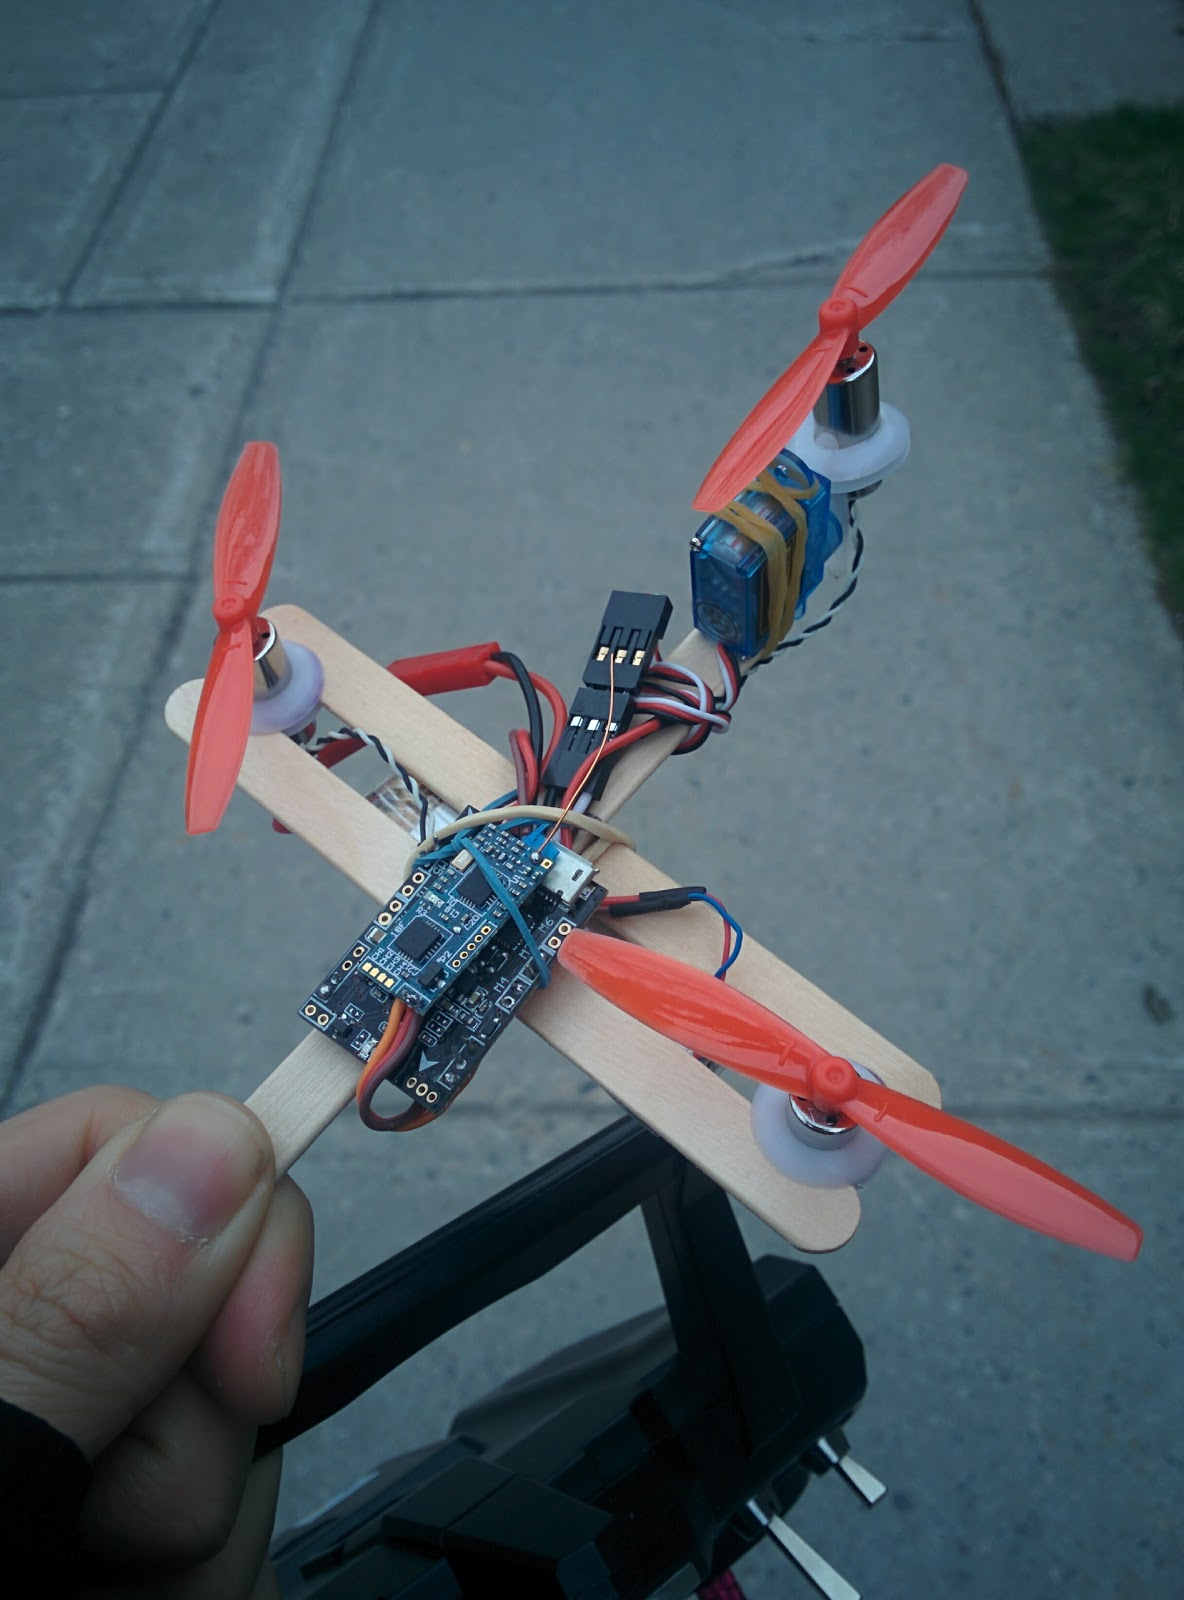 Simple Harmonic Motion Cheapest Brushed Tricopter Ever